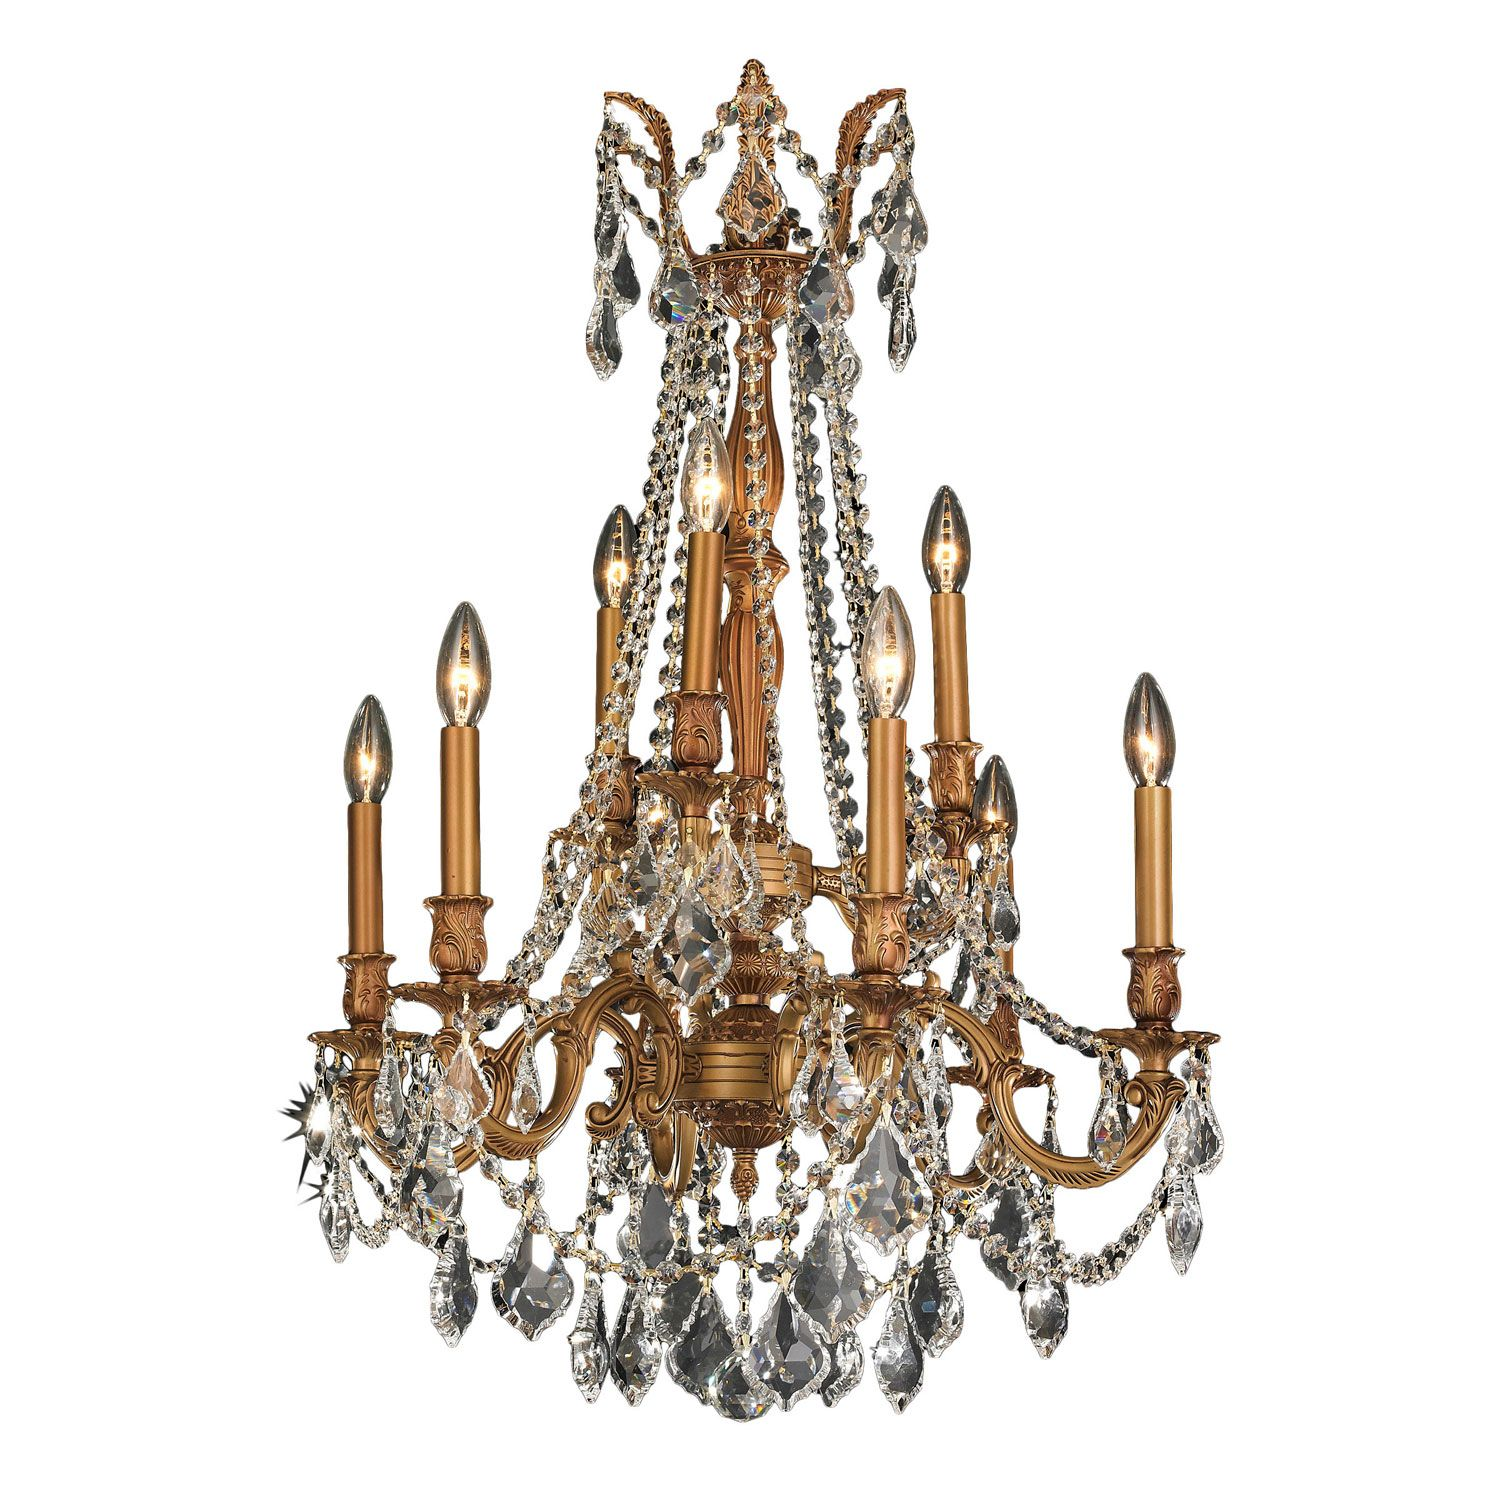 Worldwide lighting corp windsor french gold nine light chandelier worldwide lighting corp windsor french gold nine light chandelier on sale arubaitofo Gallery